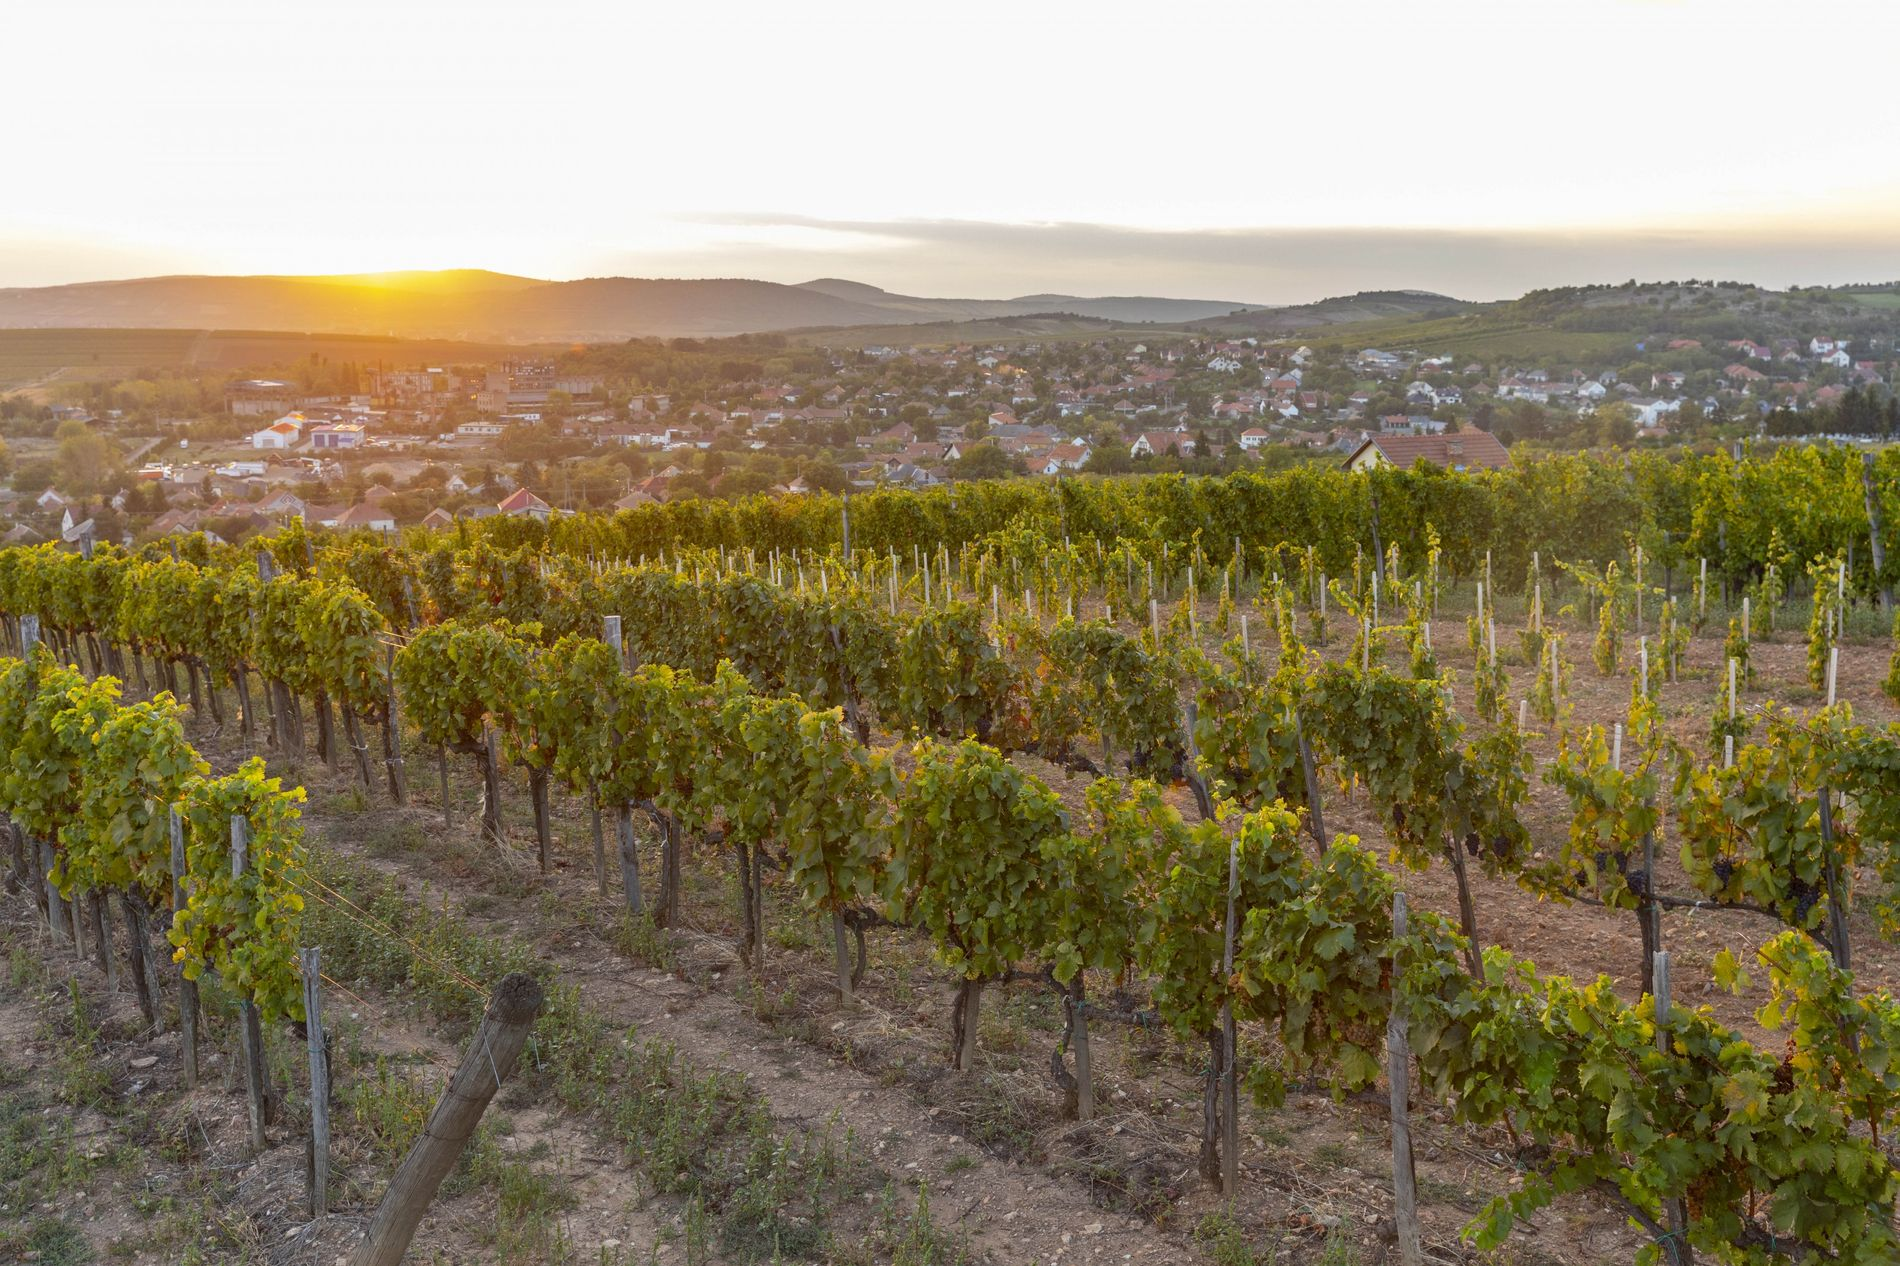 The sun sets over the Tokaj vineyards. Wines from this area are distinctive, due to the ...